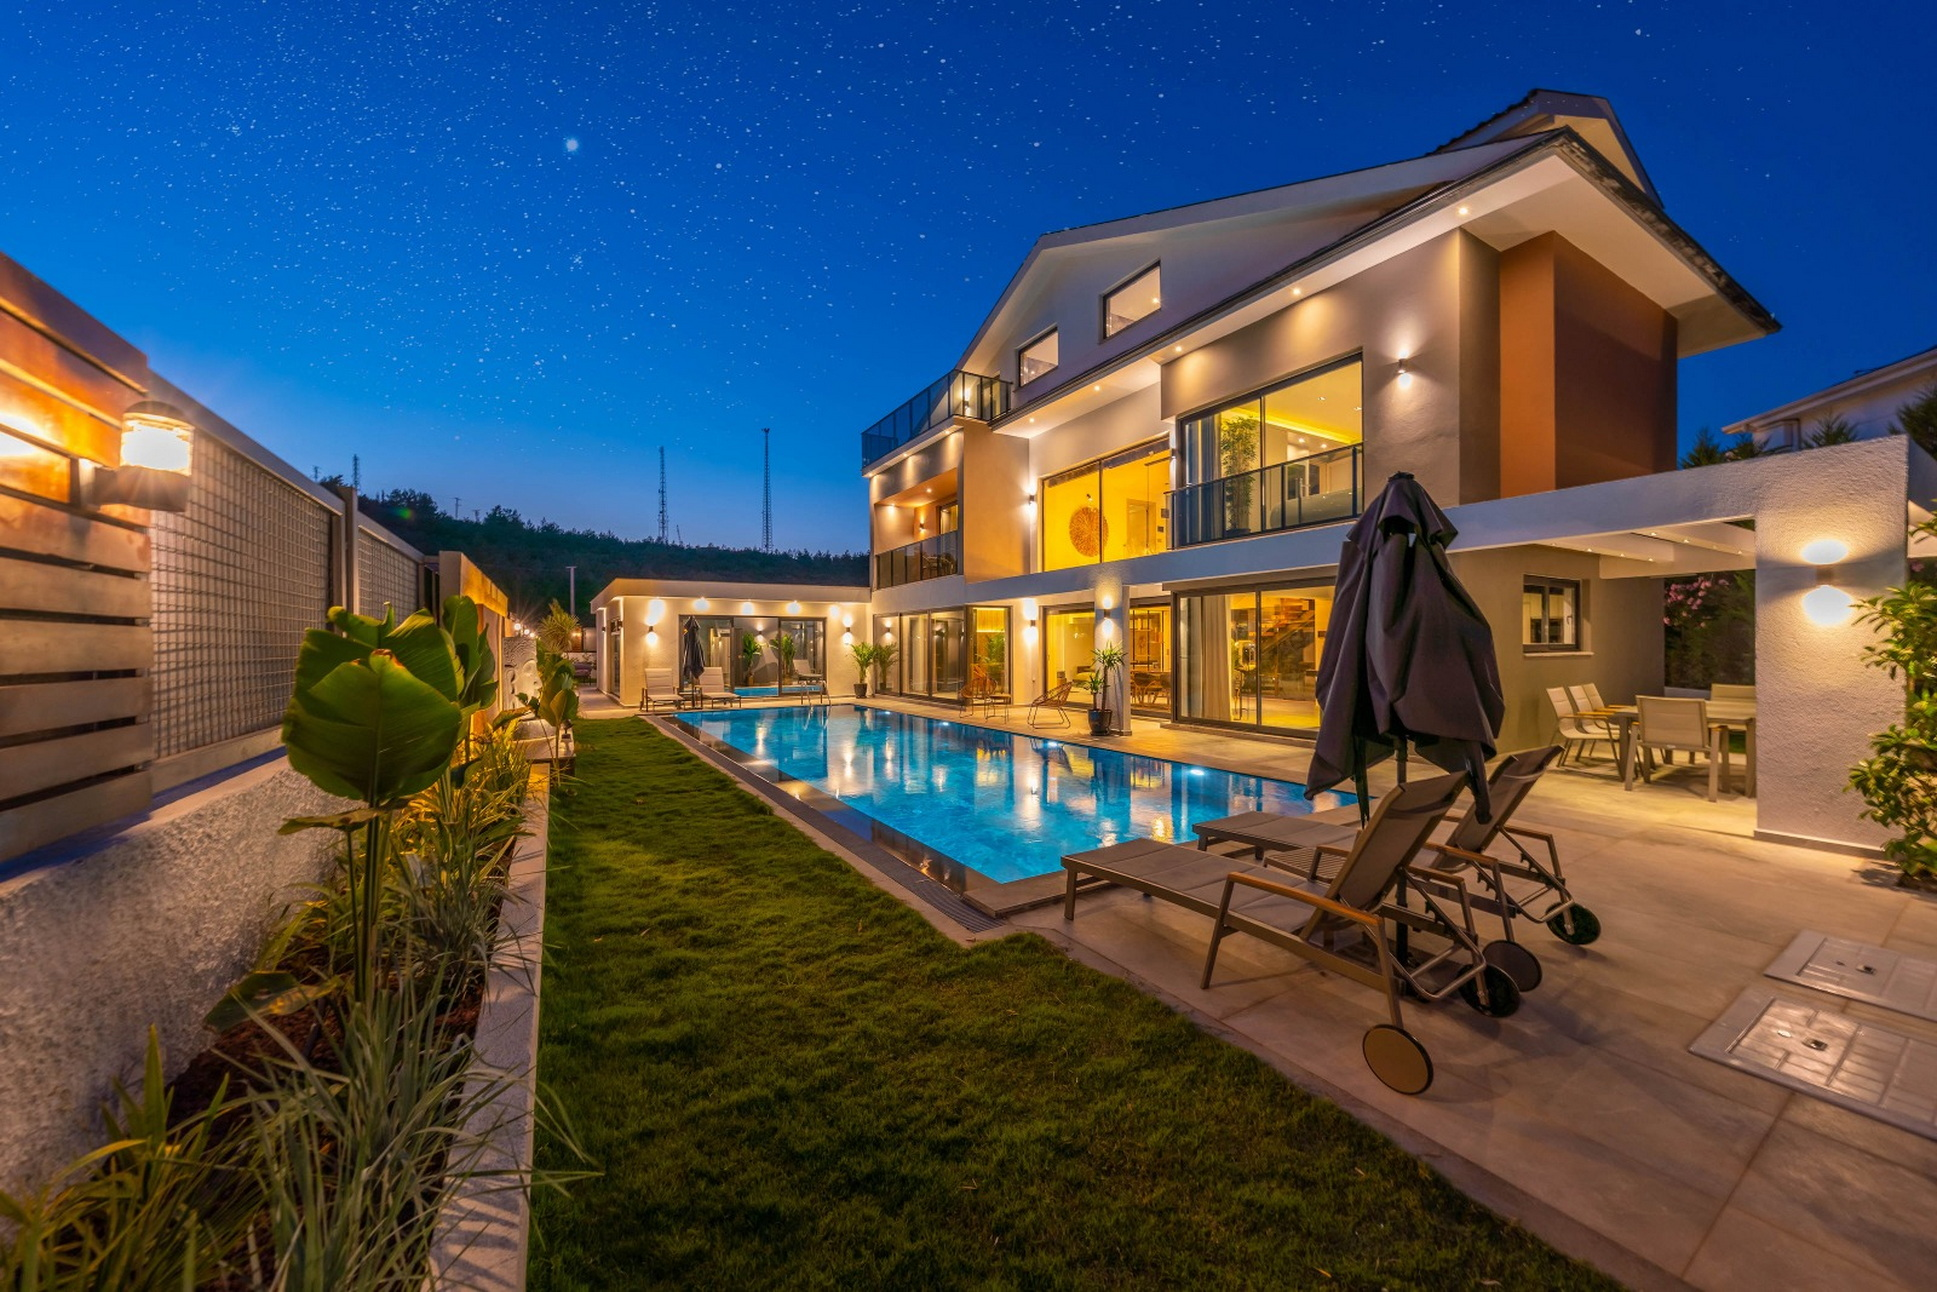 Luxury & Spacious 4 Bedroom Villa with Private Pool and Garden